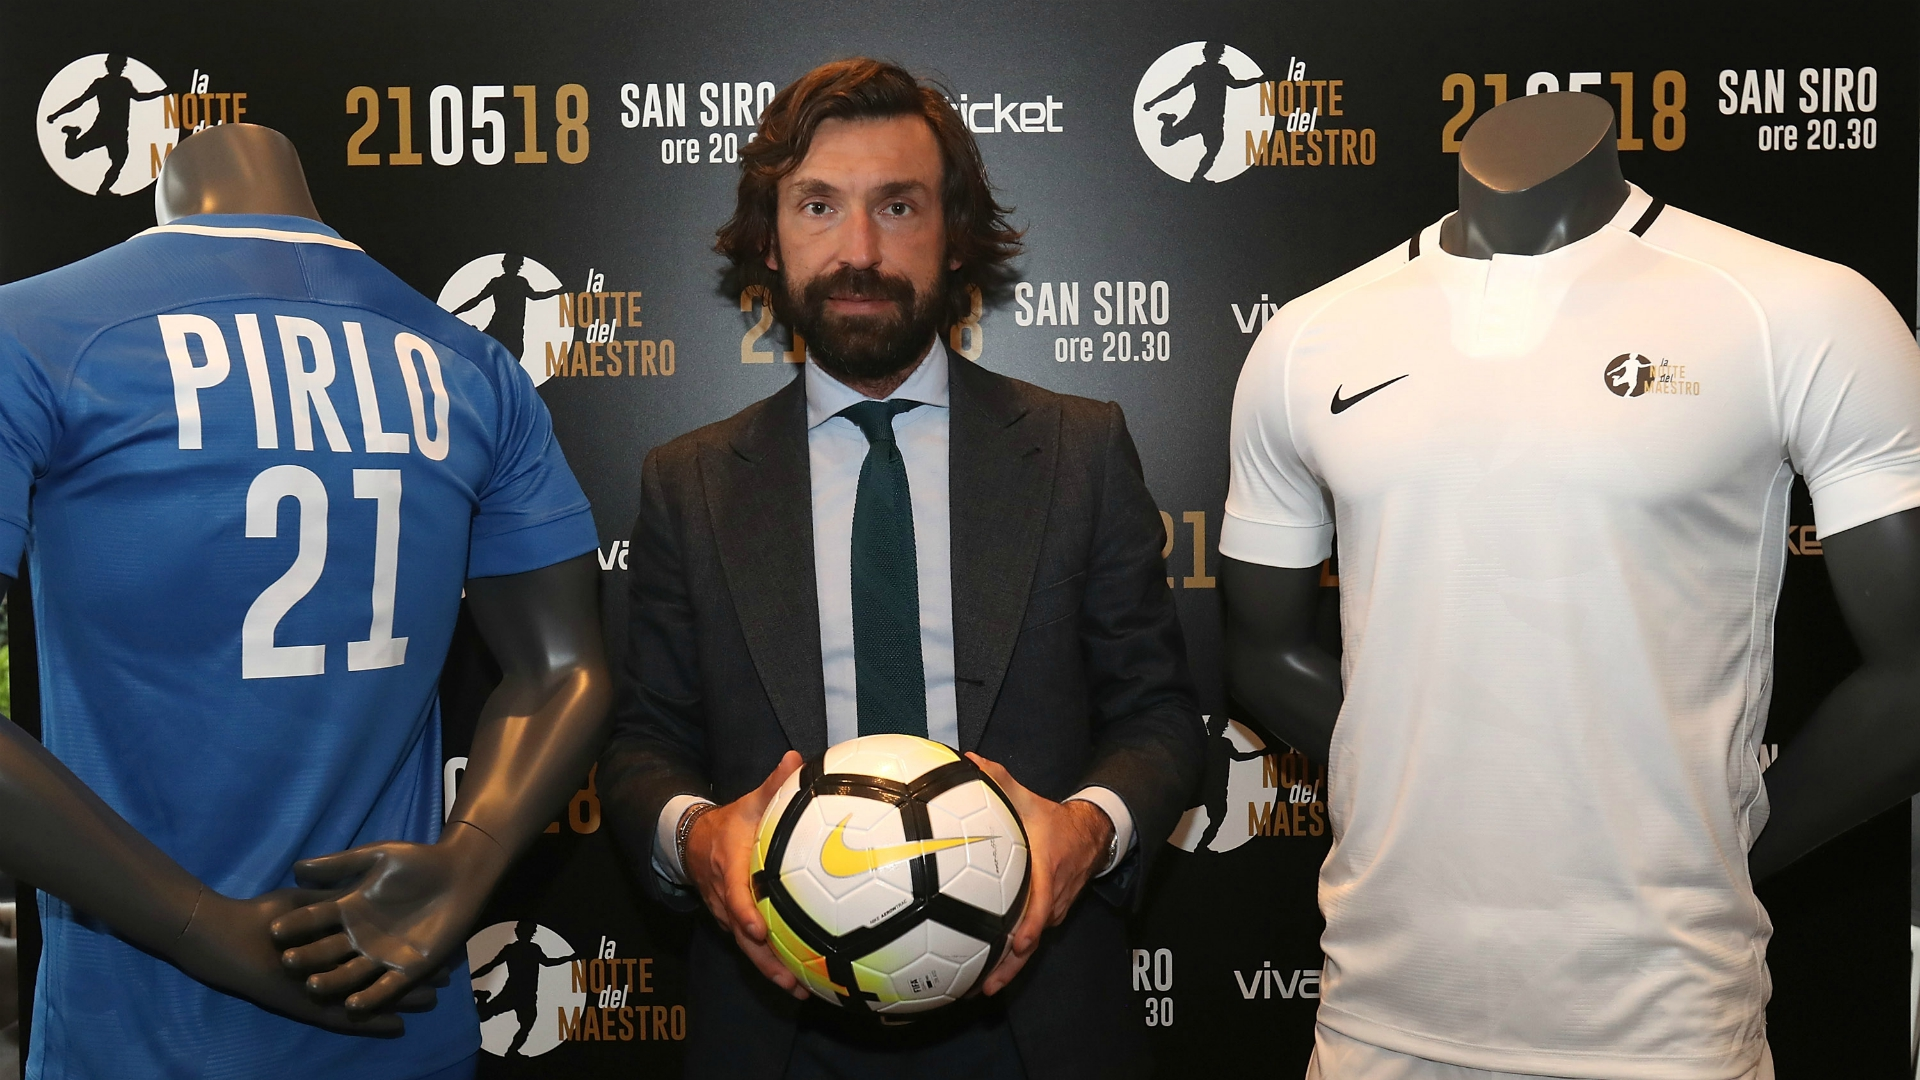 Pirlo is one of the most profound connoisseurs of football in the world – AIC president